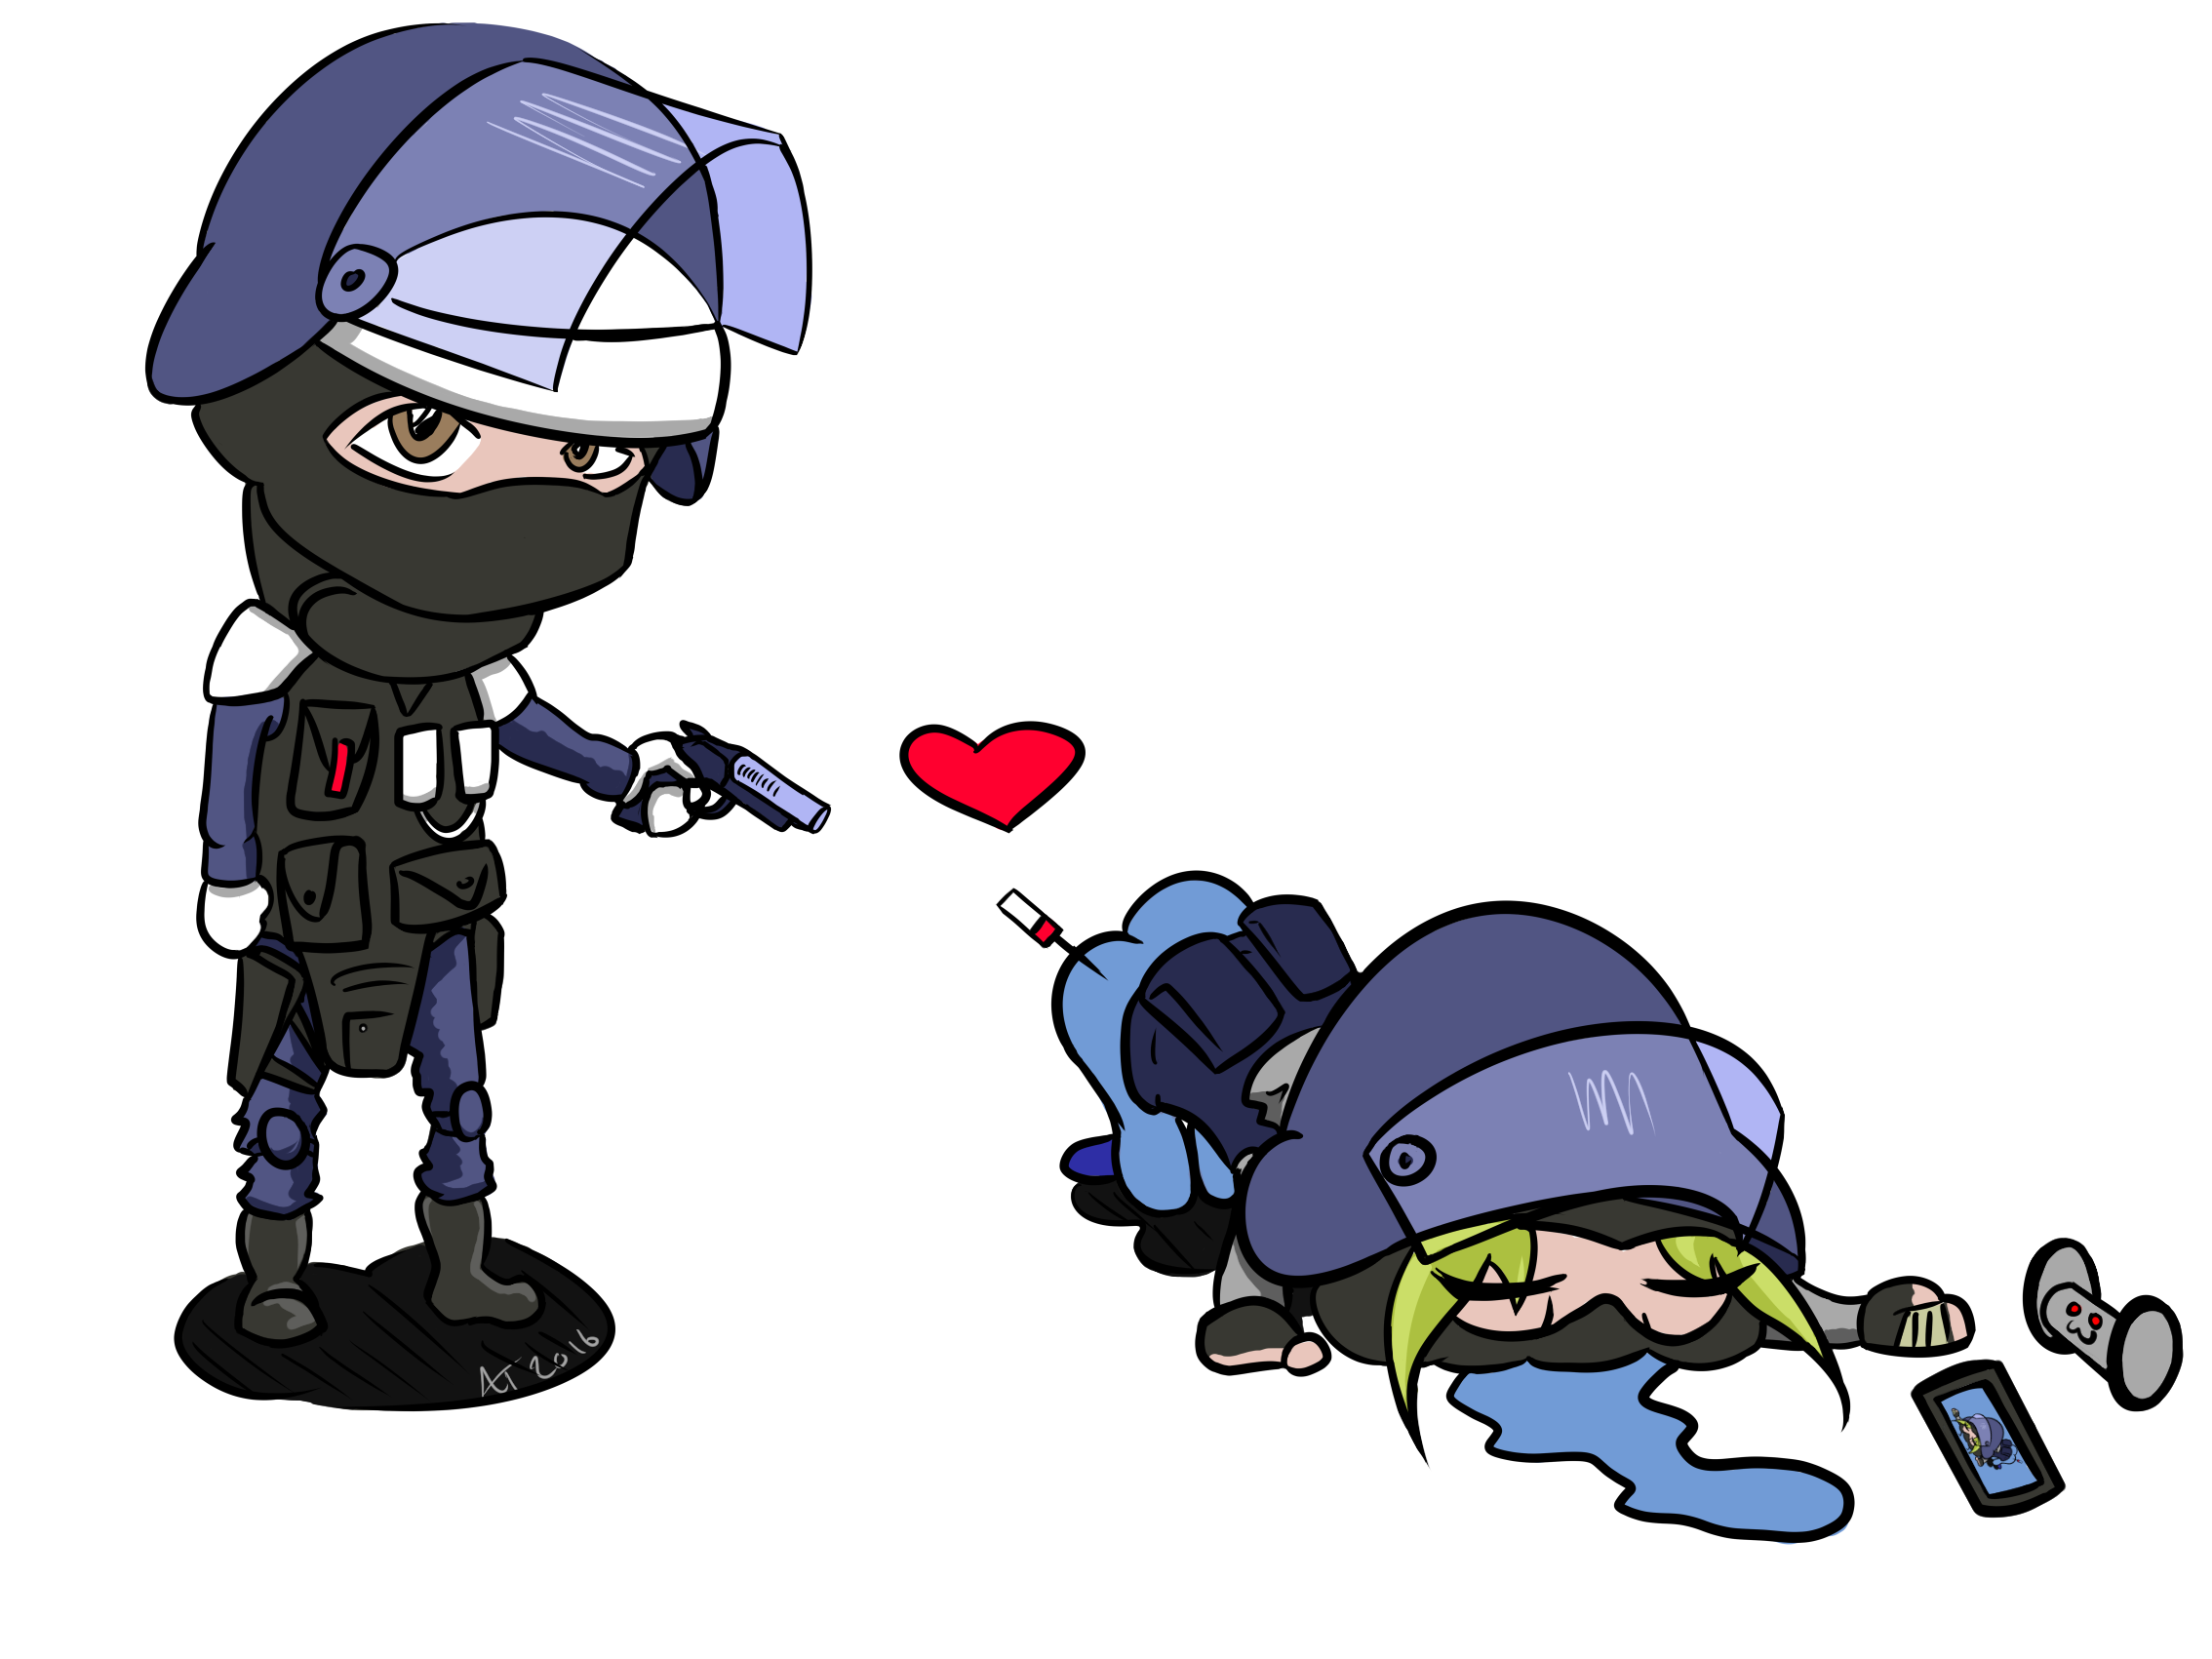 Rb6 siege iq cliparts picture transparent download OC] Doc and IQ drawing, possible comic? Maybe? : Rainbow6 picture transparent download